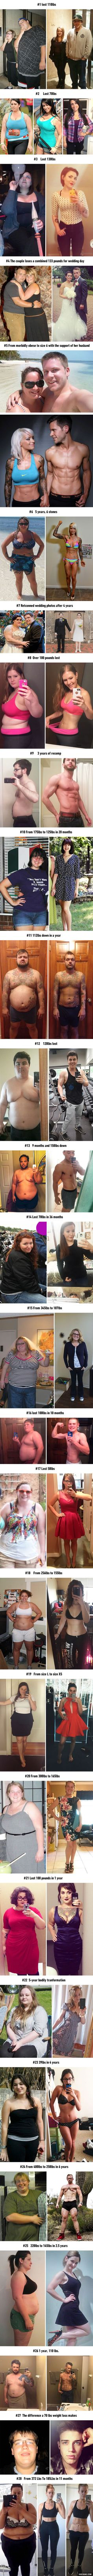 28 Dramatic Weight-Loss Photos Showing What Willpower Can Do